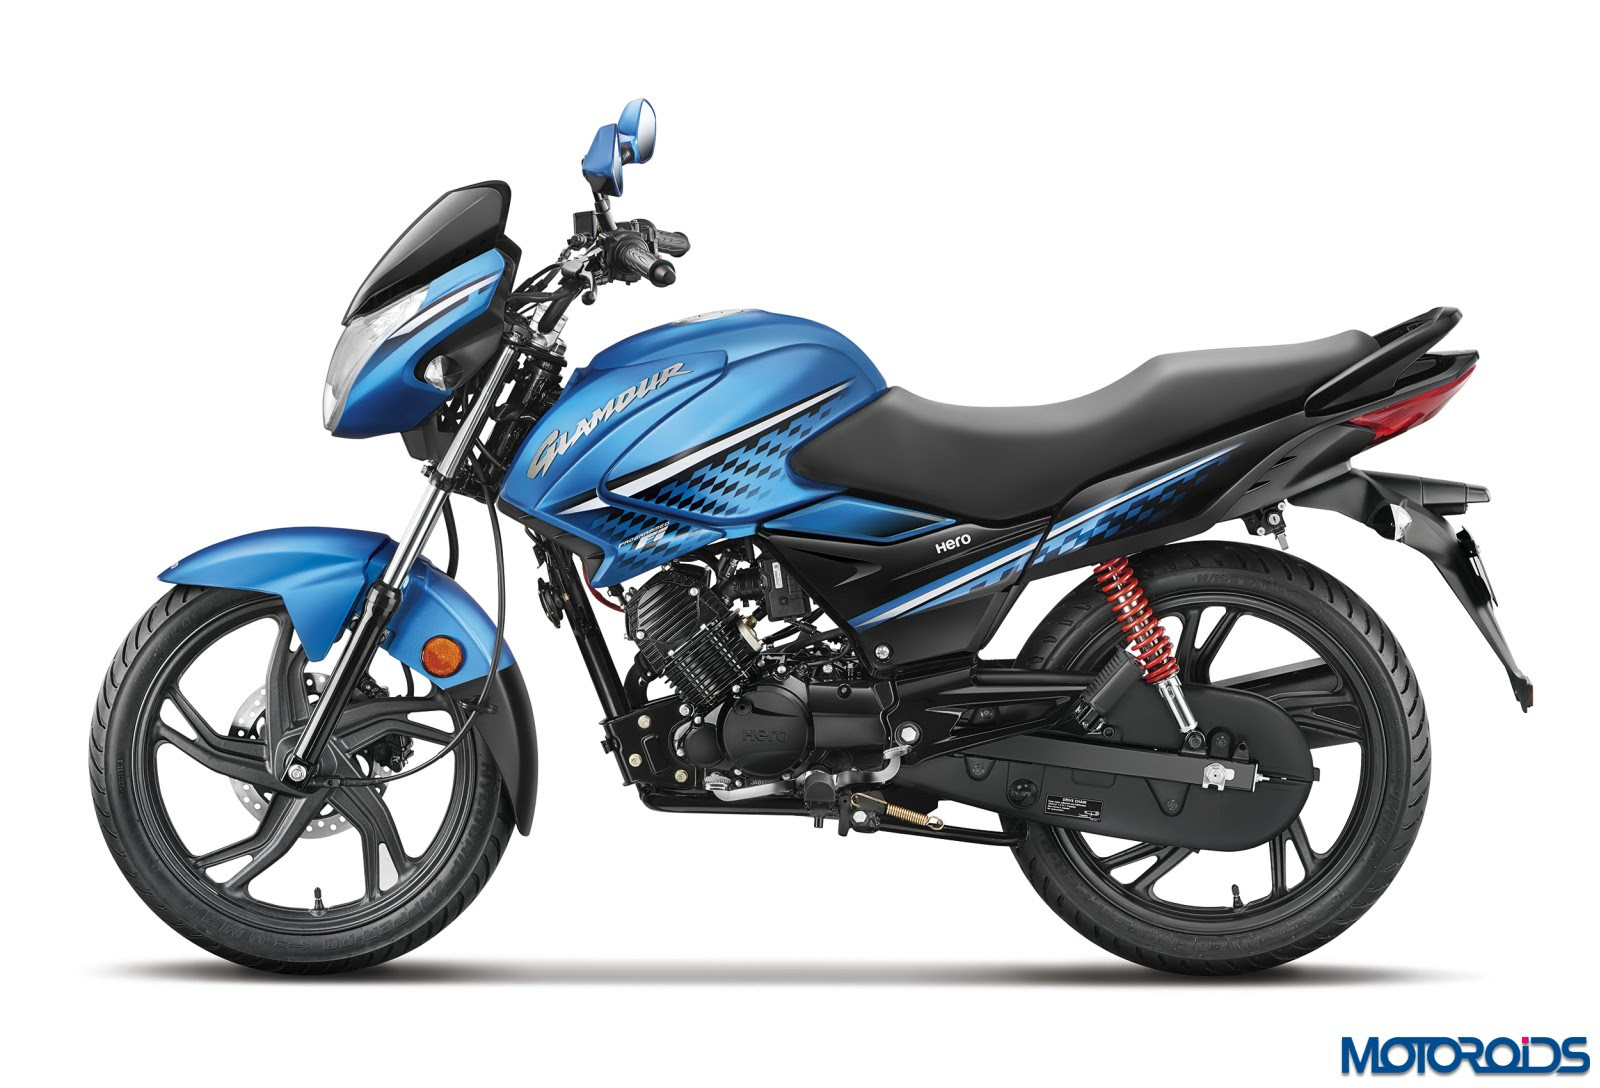 2017 Hero Motocorp Glamour Launched In India Prices Start